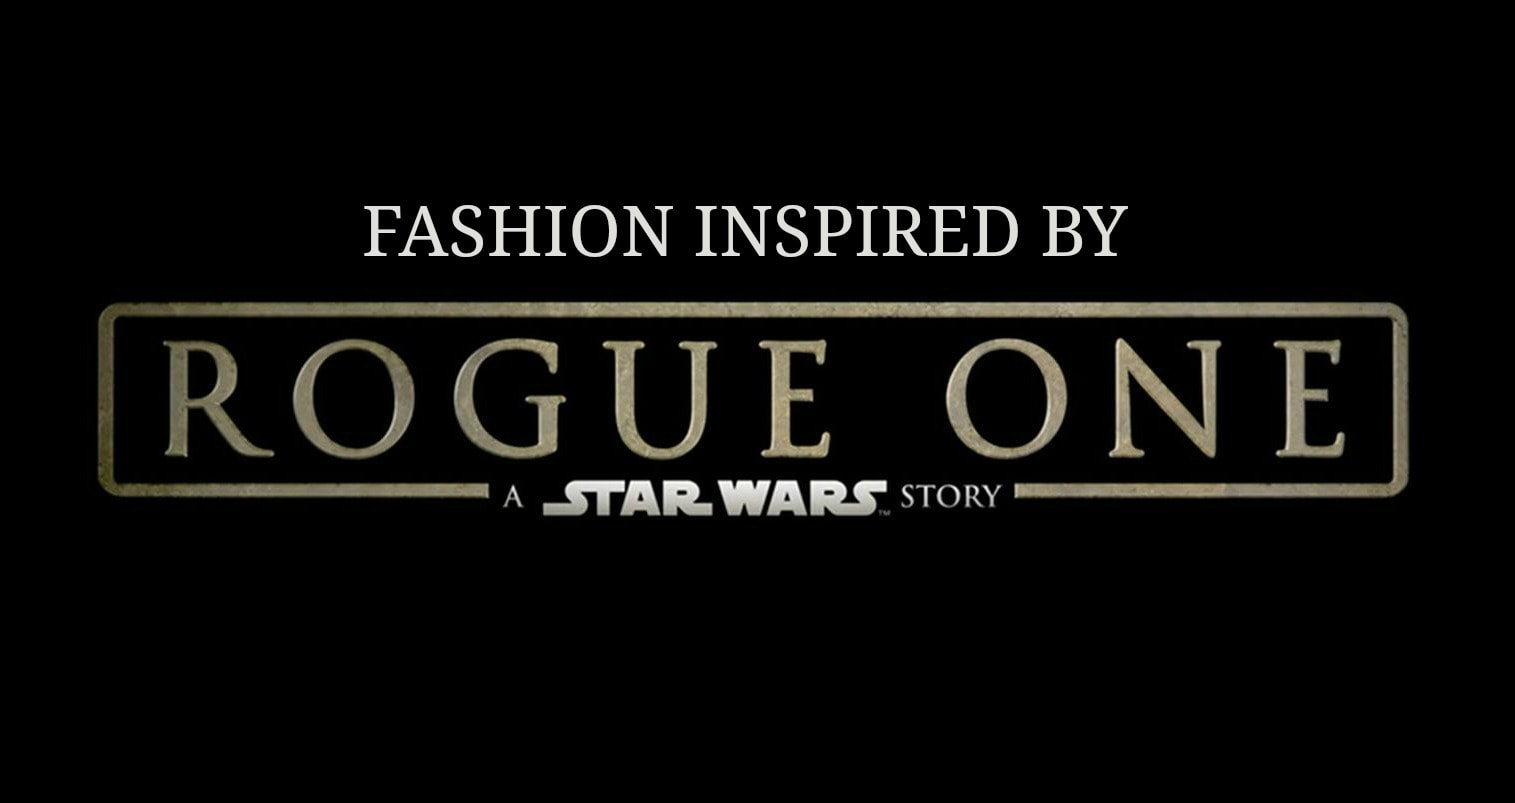 Fashion inspired by Rogue One a Star Wars story